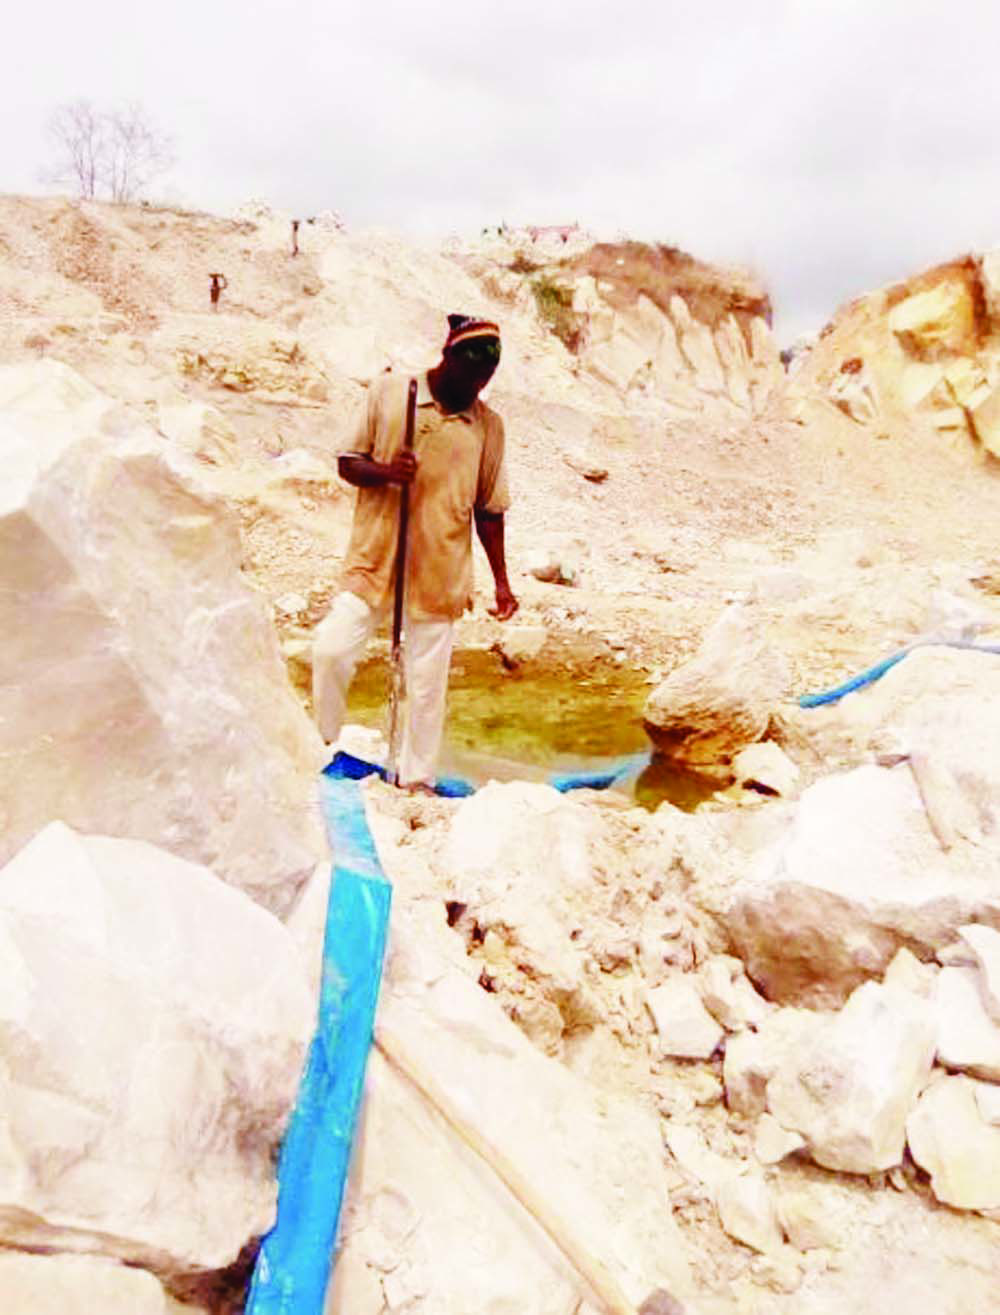 Firm, workers flee site as illegal miners invade Edo community